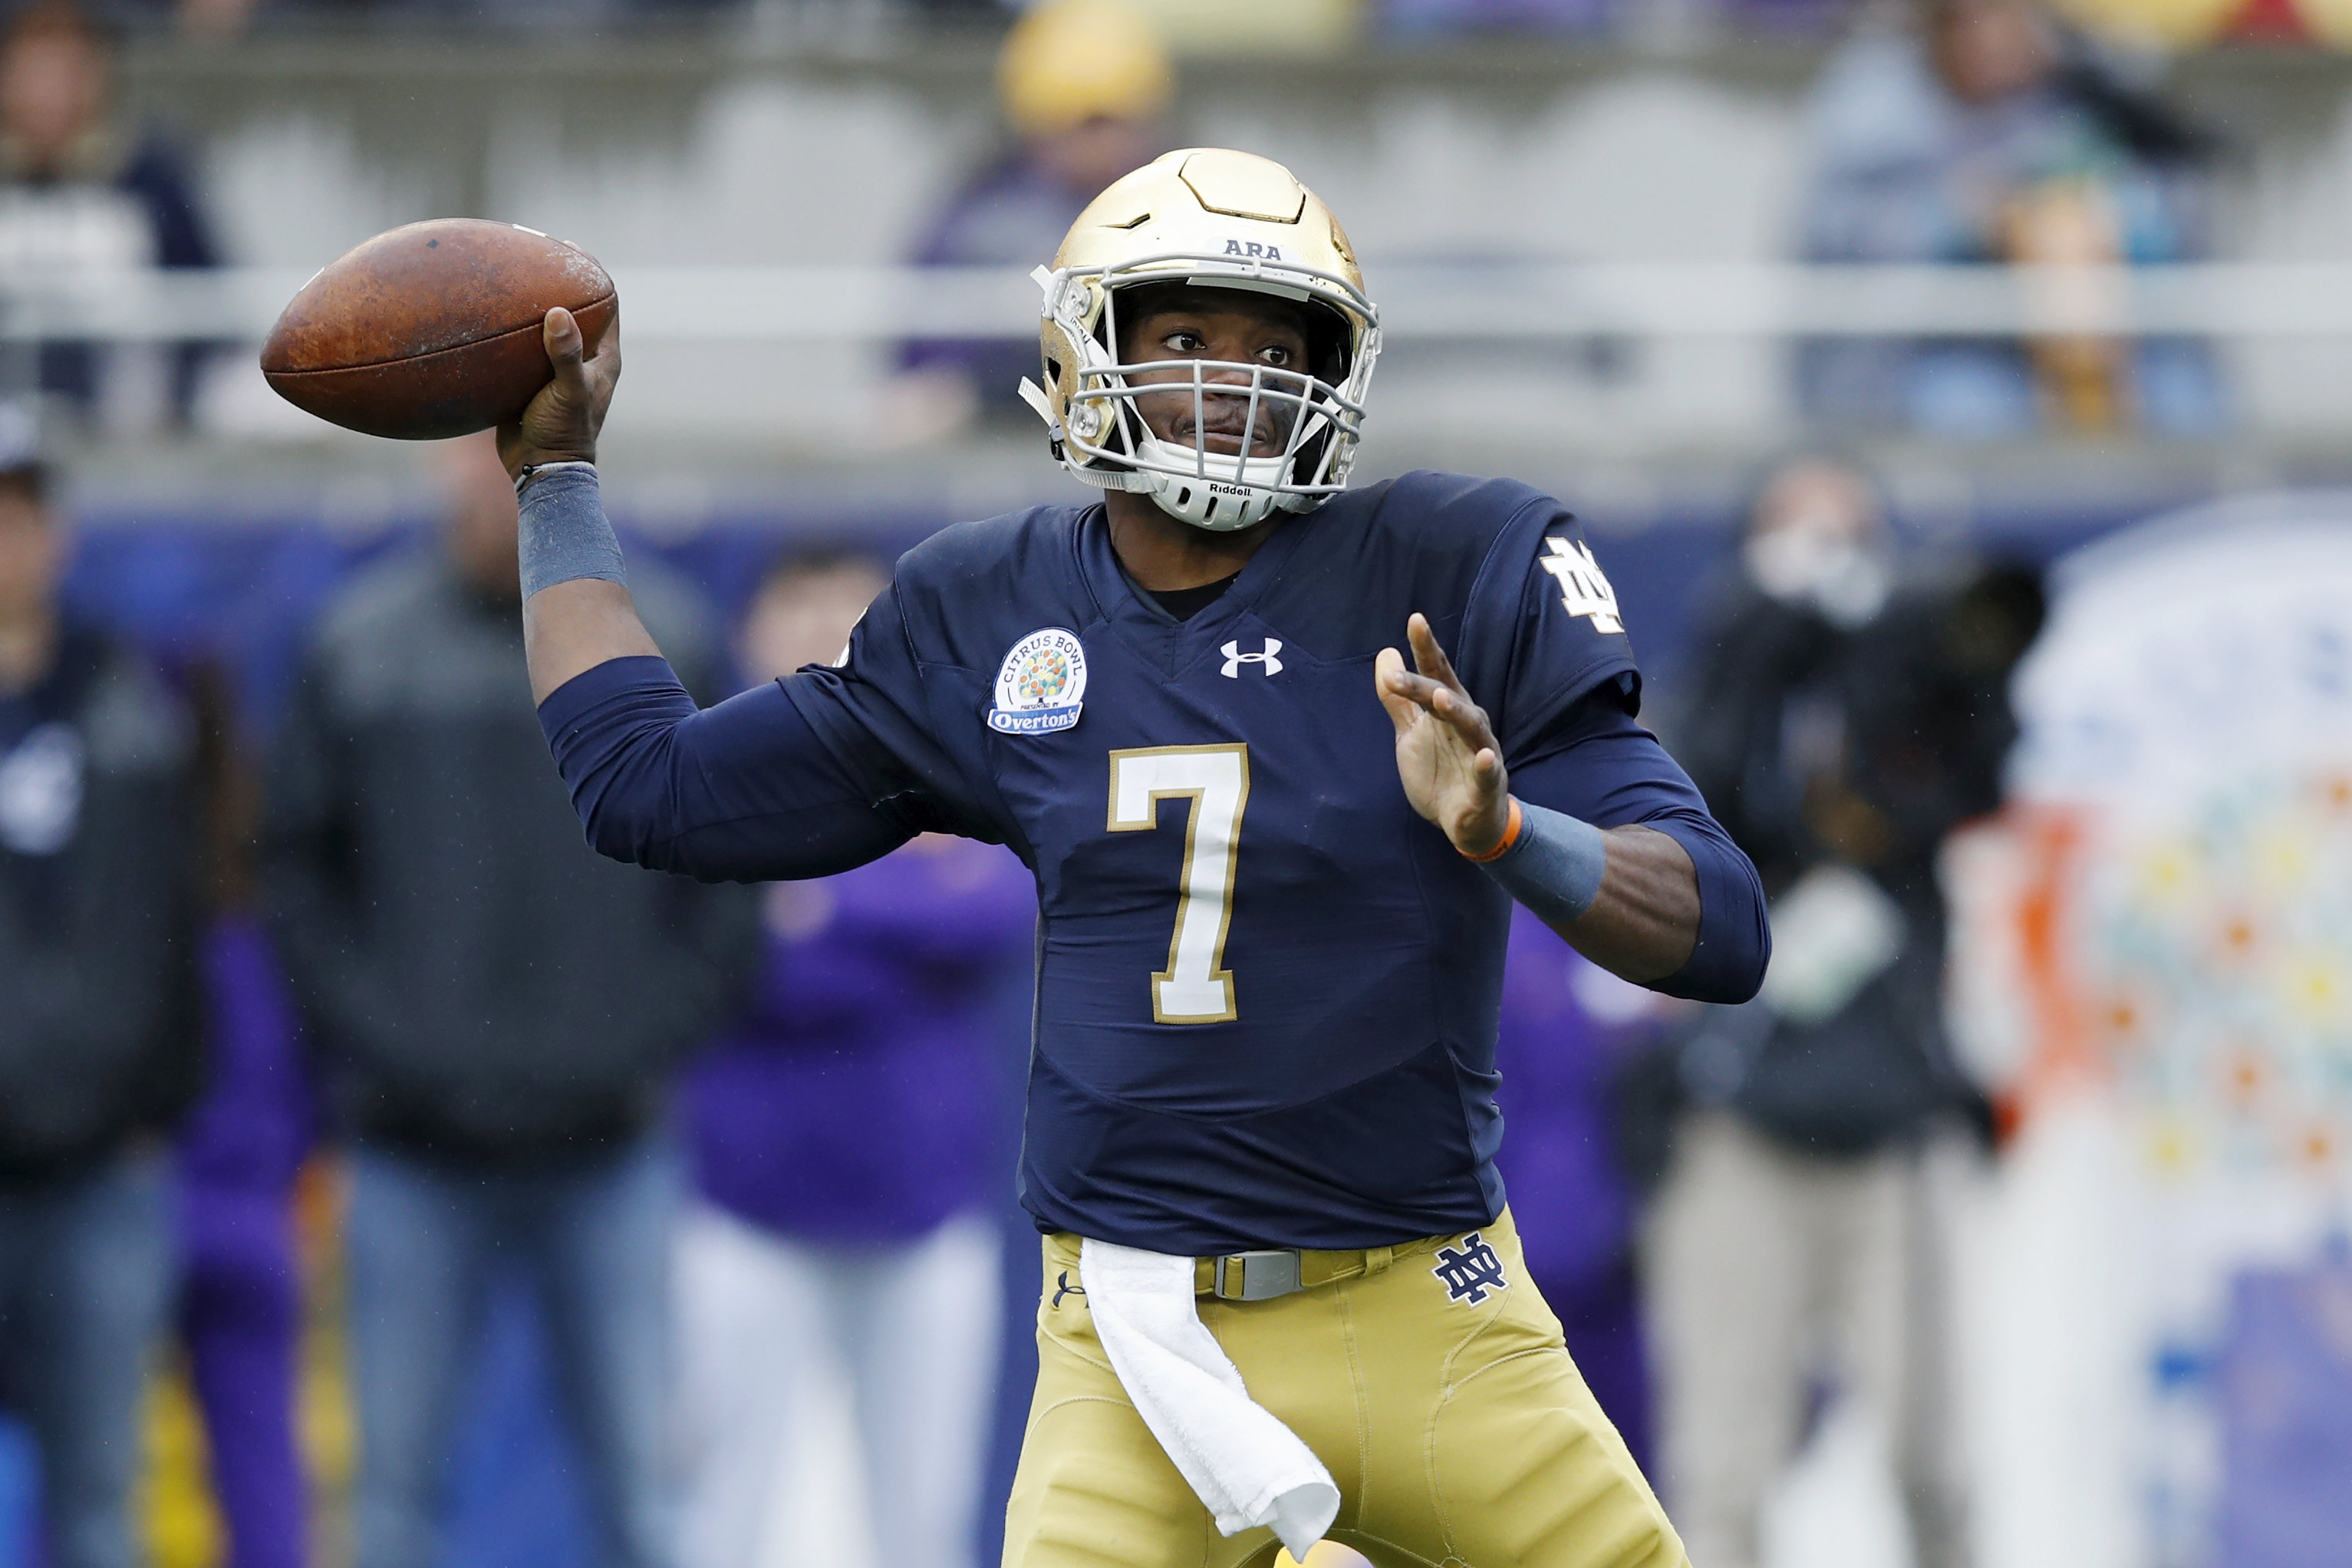 Notre Dame Football: Are the Irish Serious National Title Contenders?